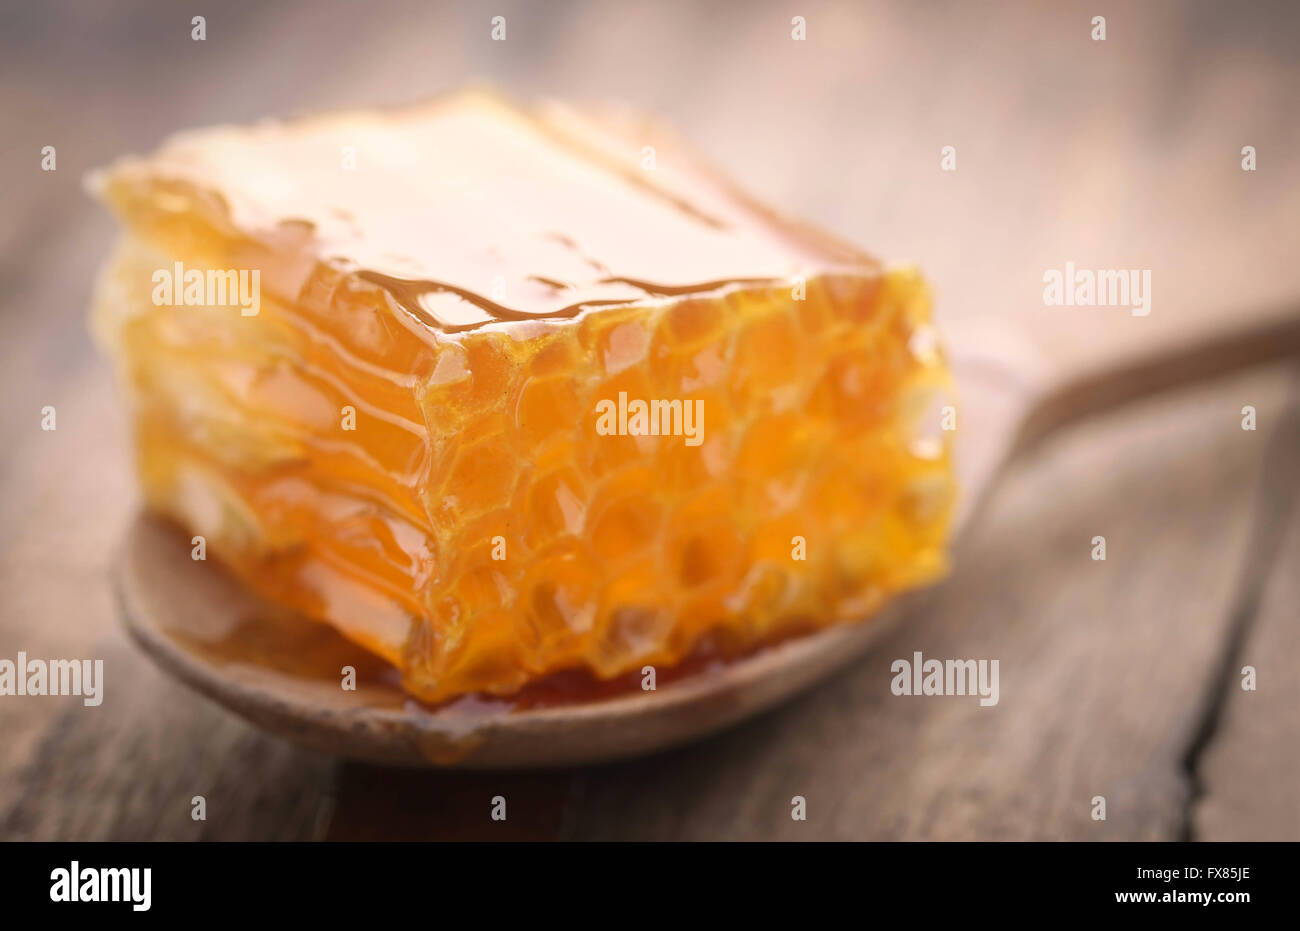 Closeup of honeycomb in a wooden spoon - Stock Image